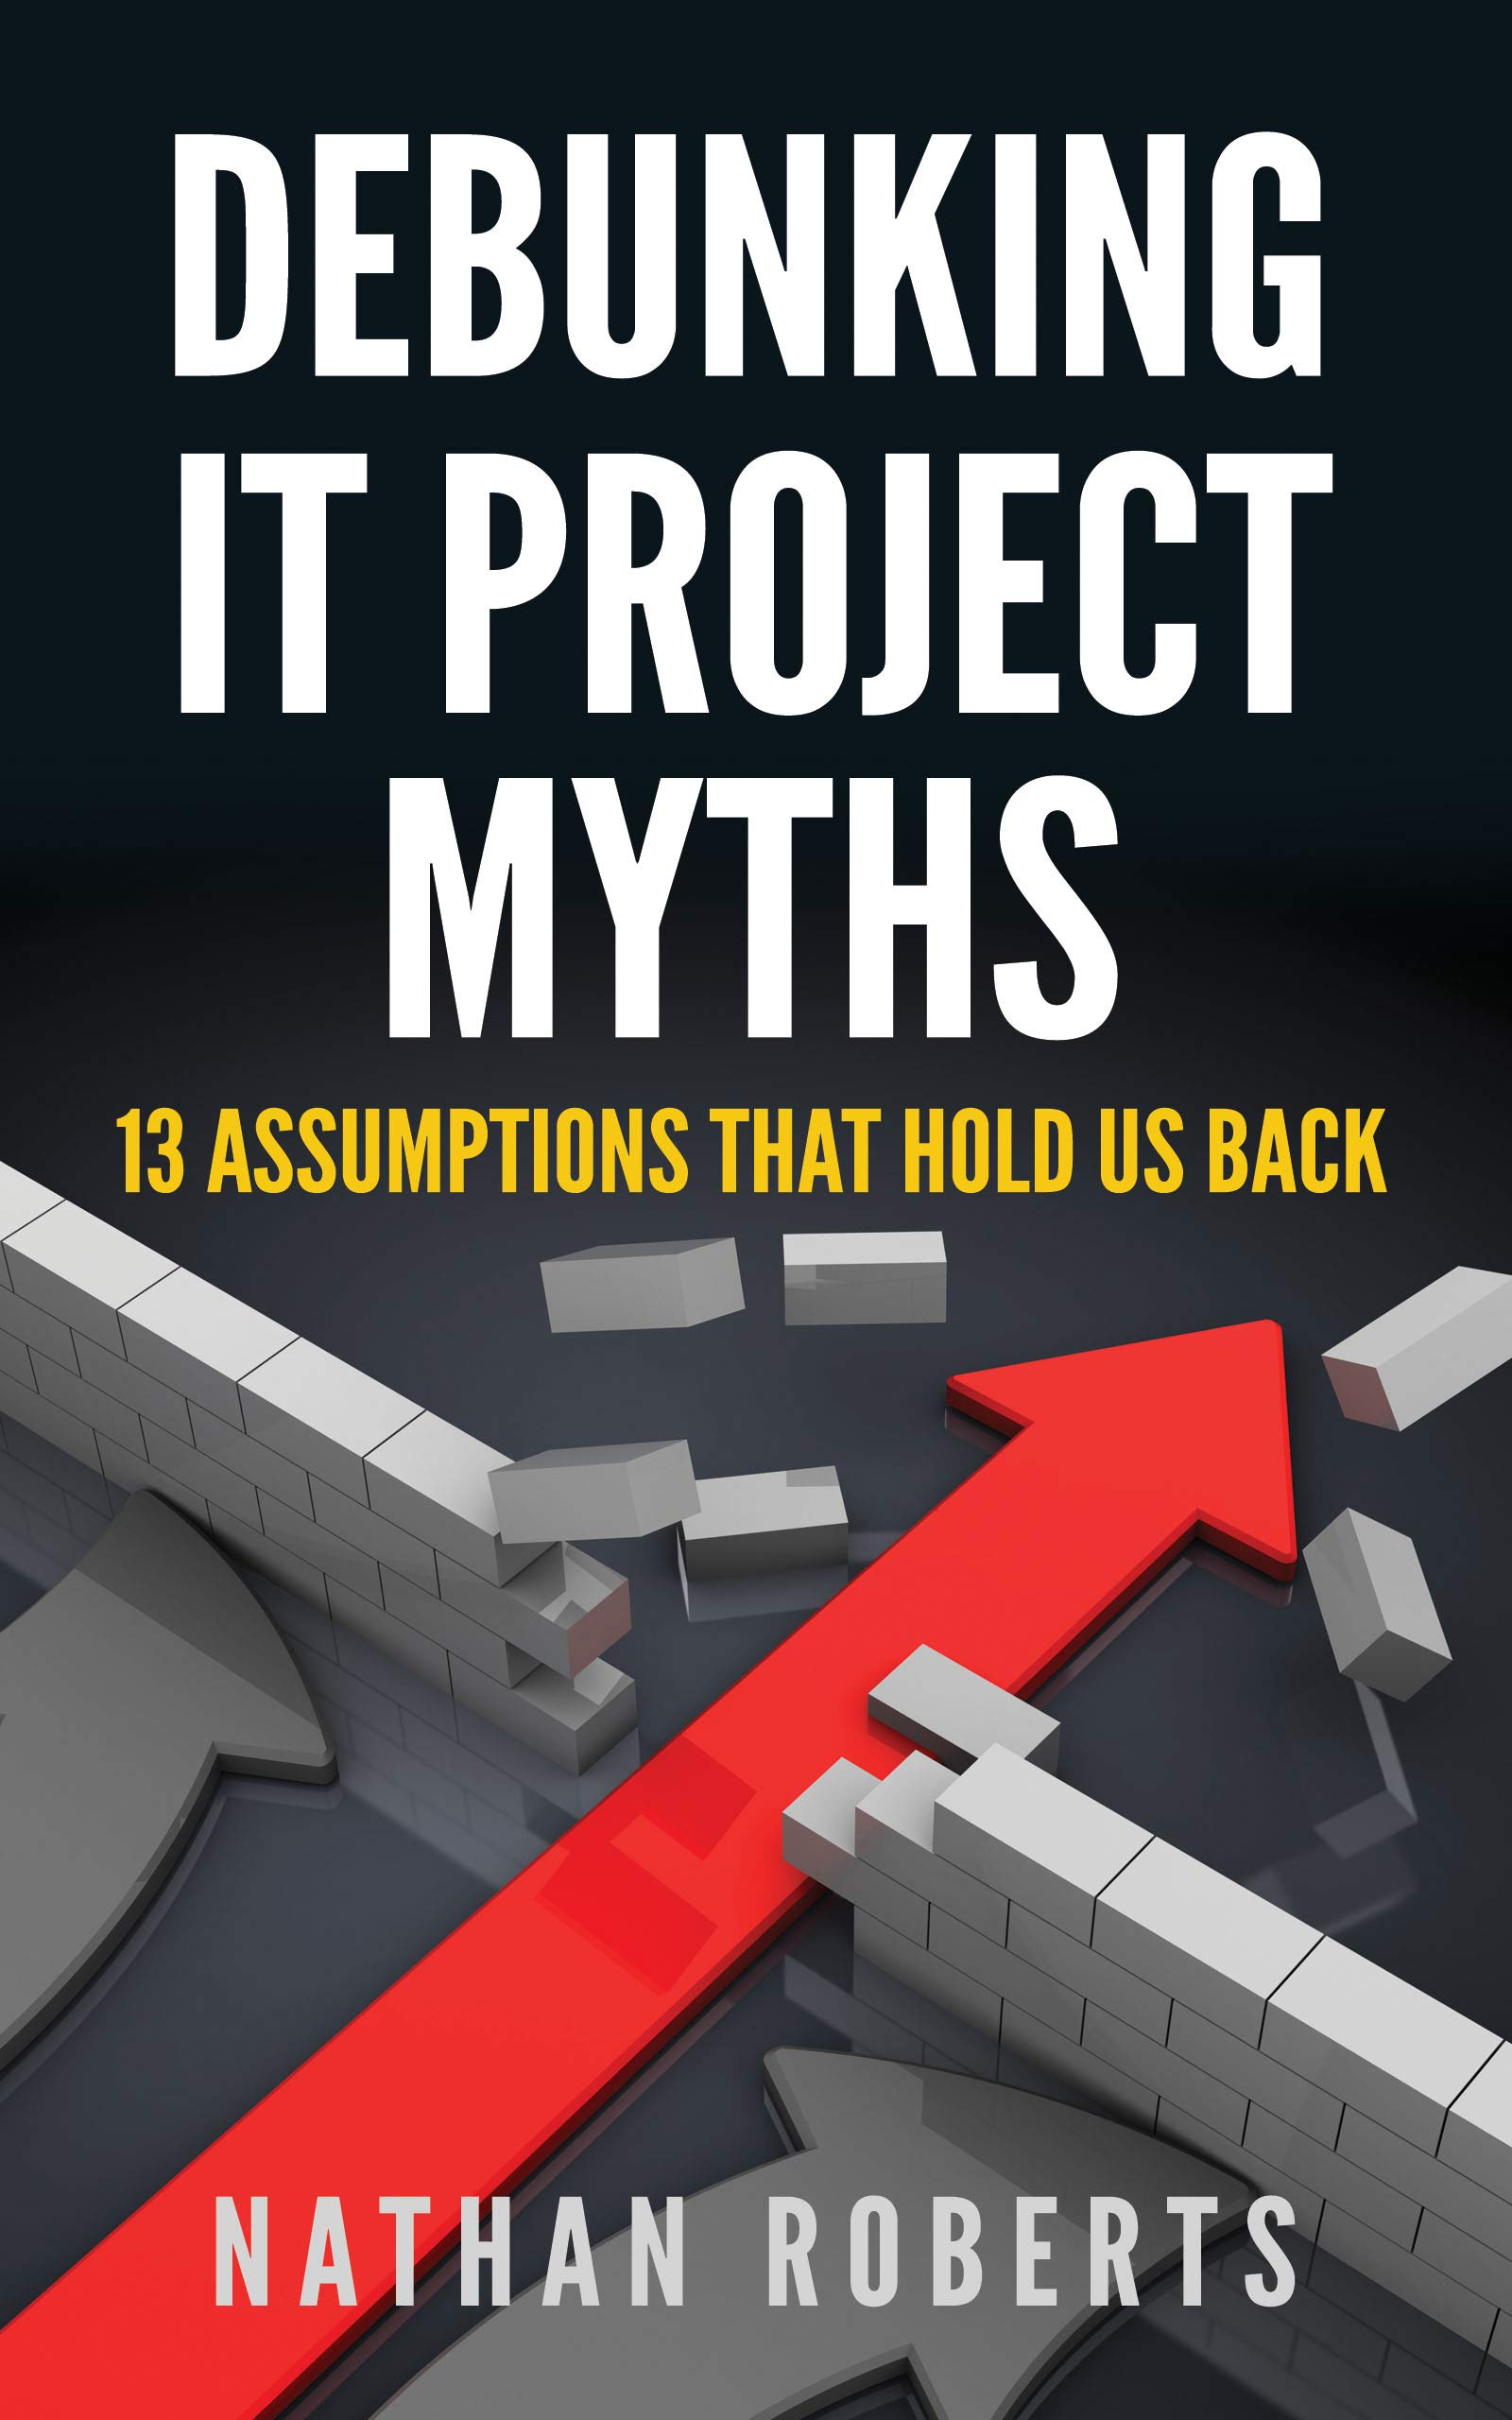 Debunking IT Project Myths: 13 Assumptions That Hold Us Back